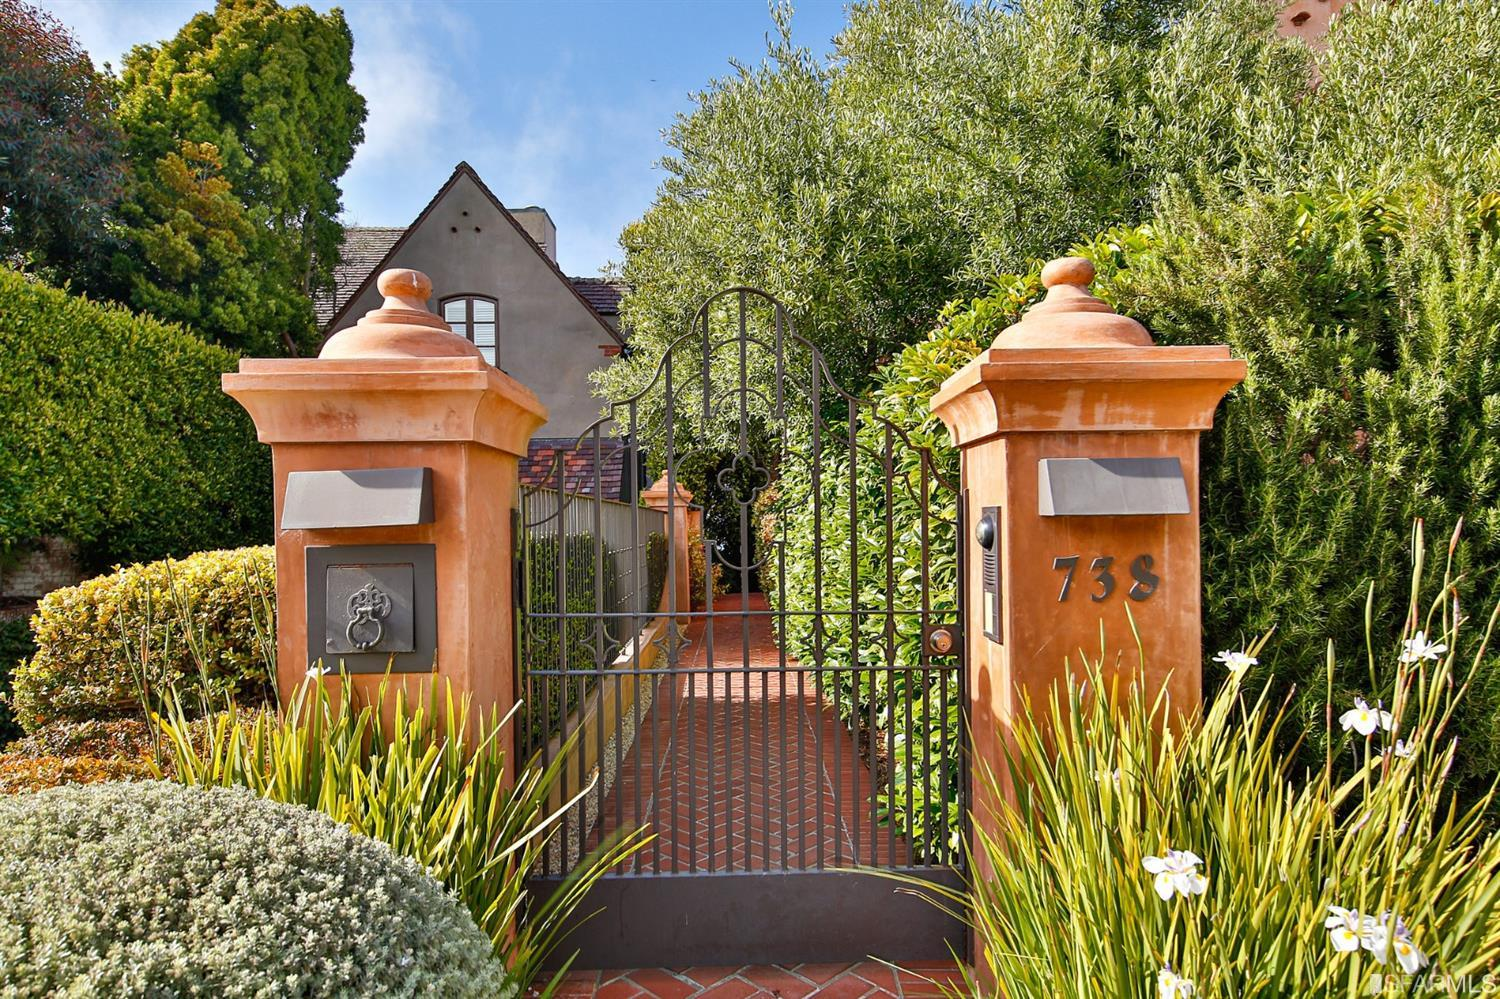 This striking wrought iron gate offers privacy for the owners.  The brick pathway leads past the front garden to the entry - so